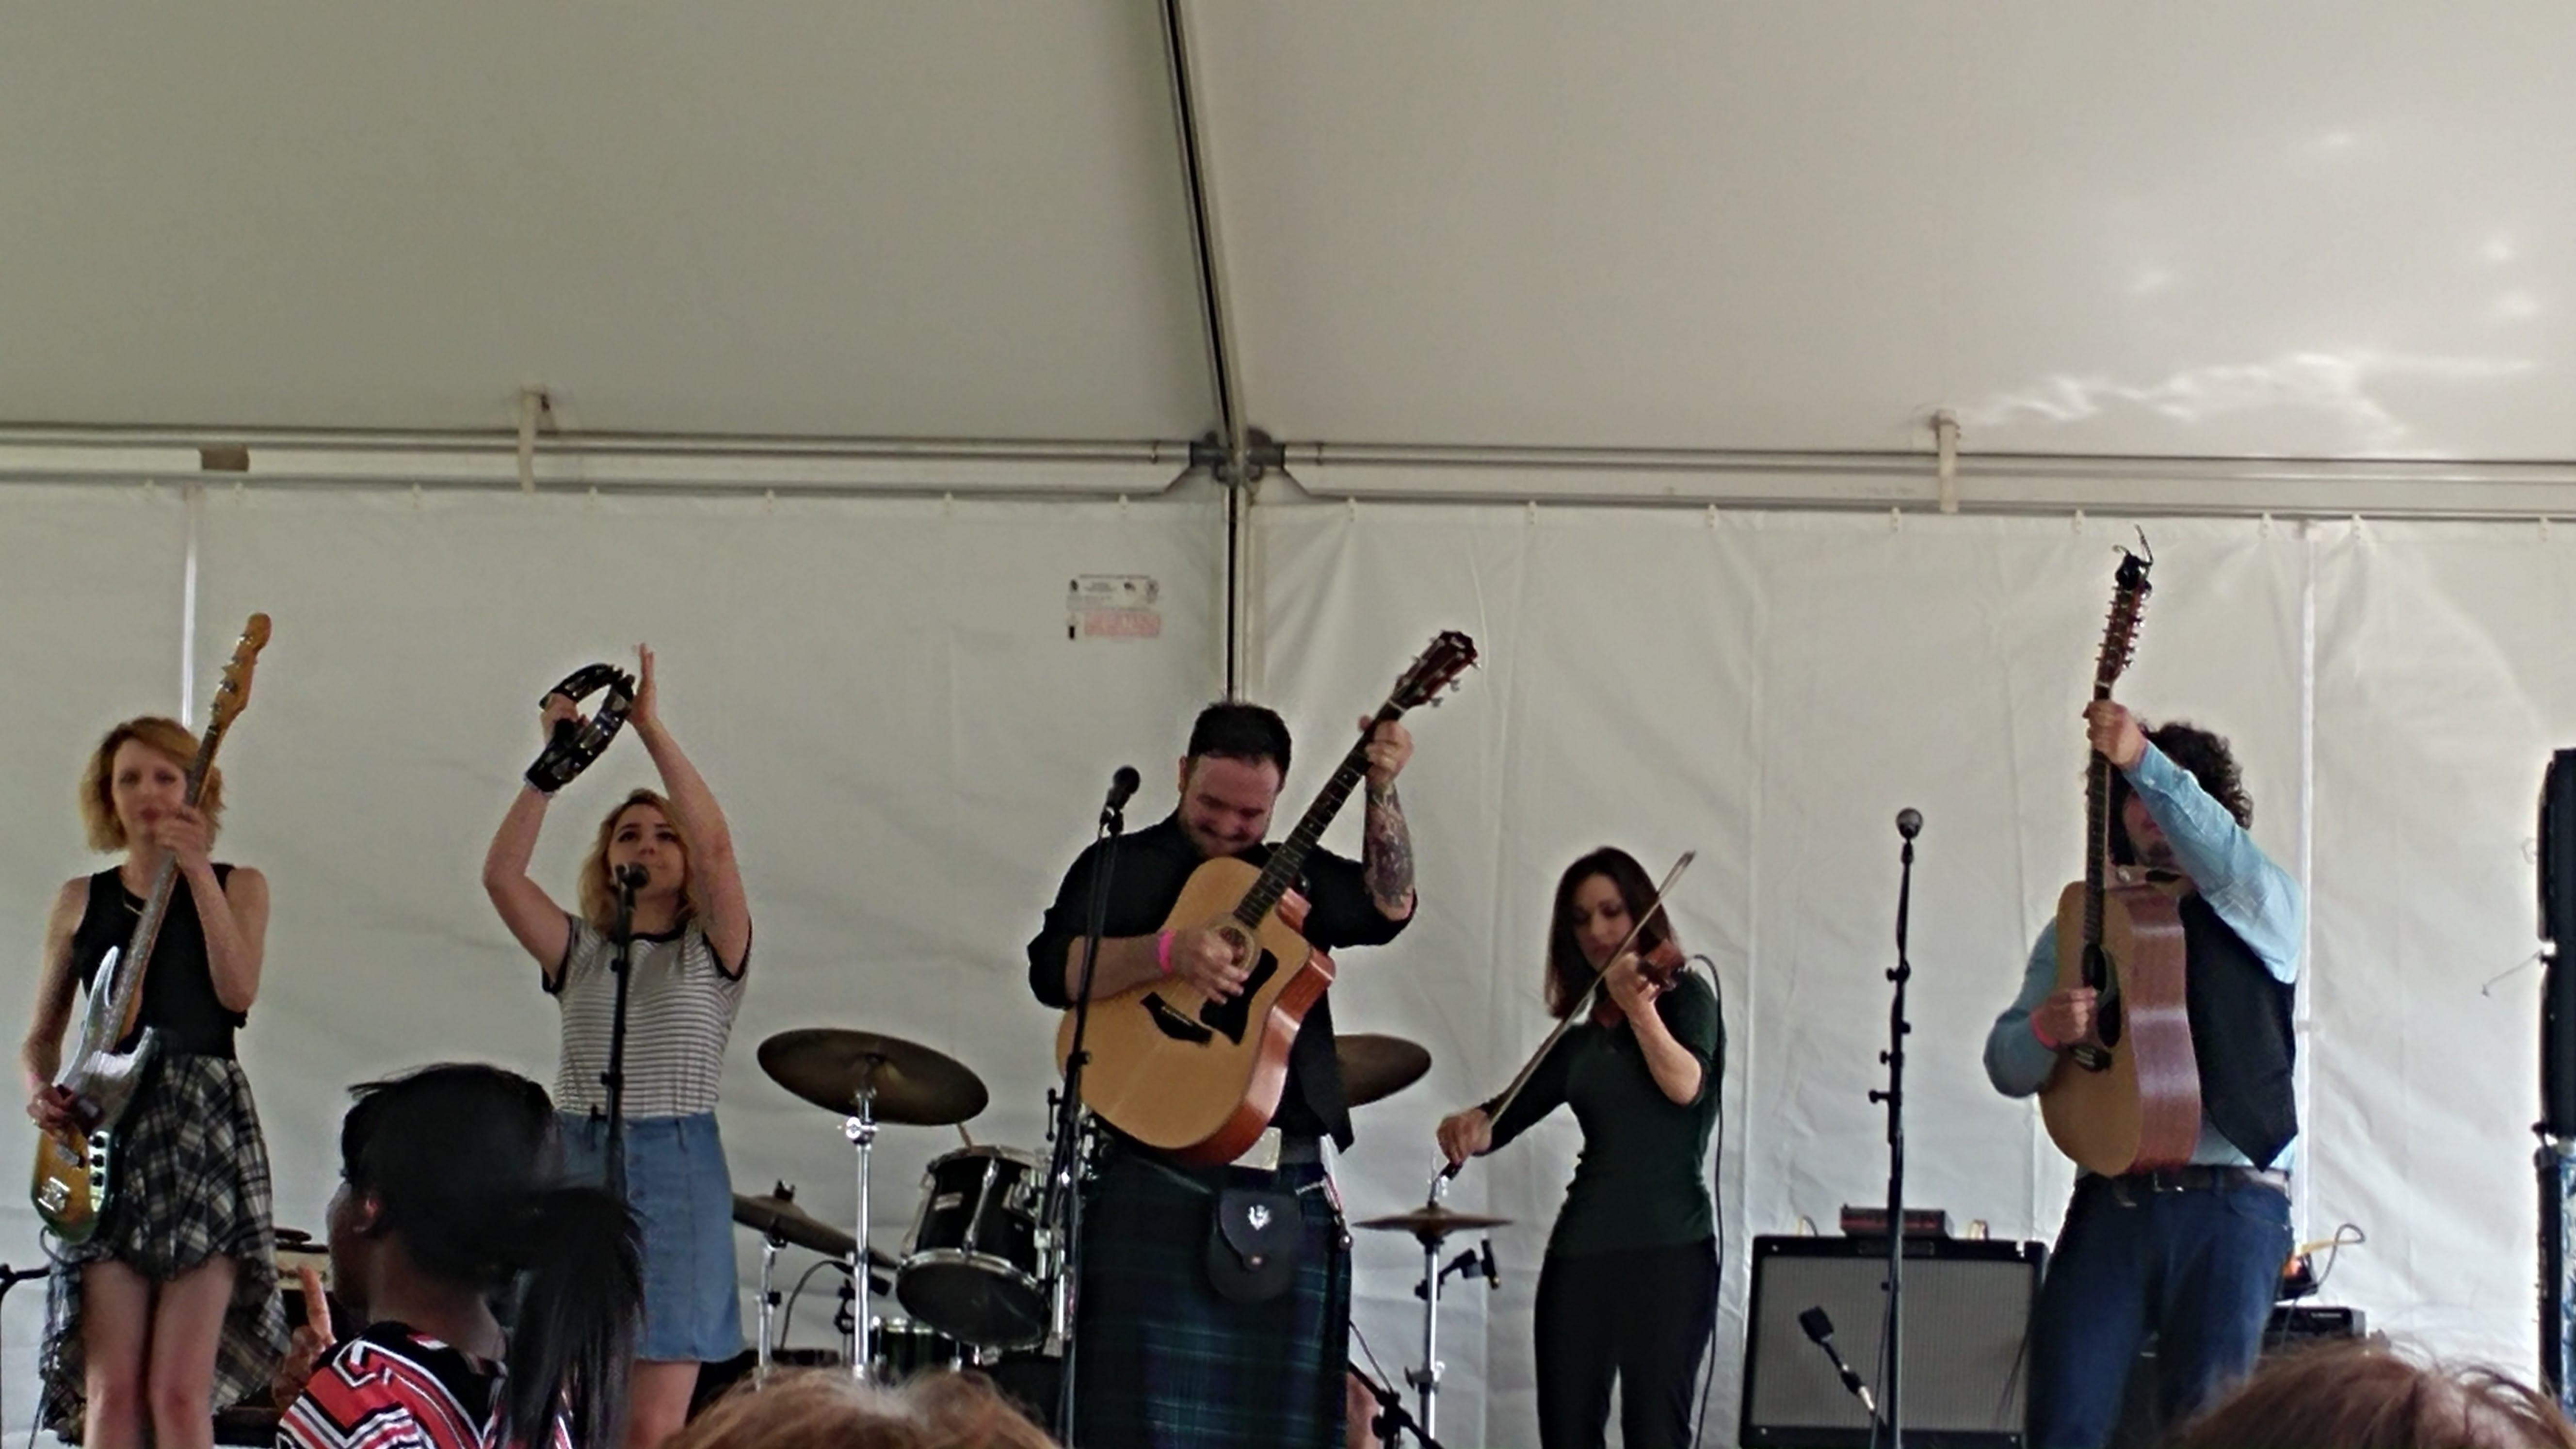 Syr folk rock band, did not disappoint. Great performances!